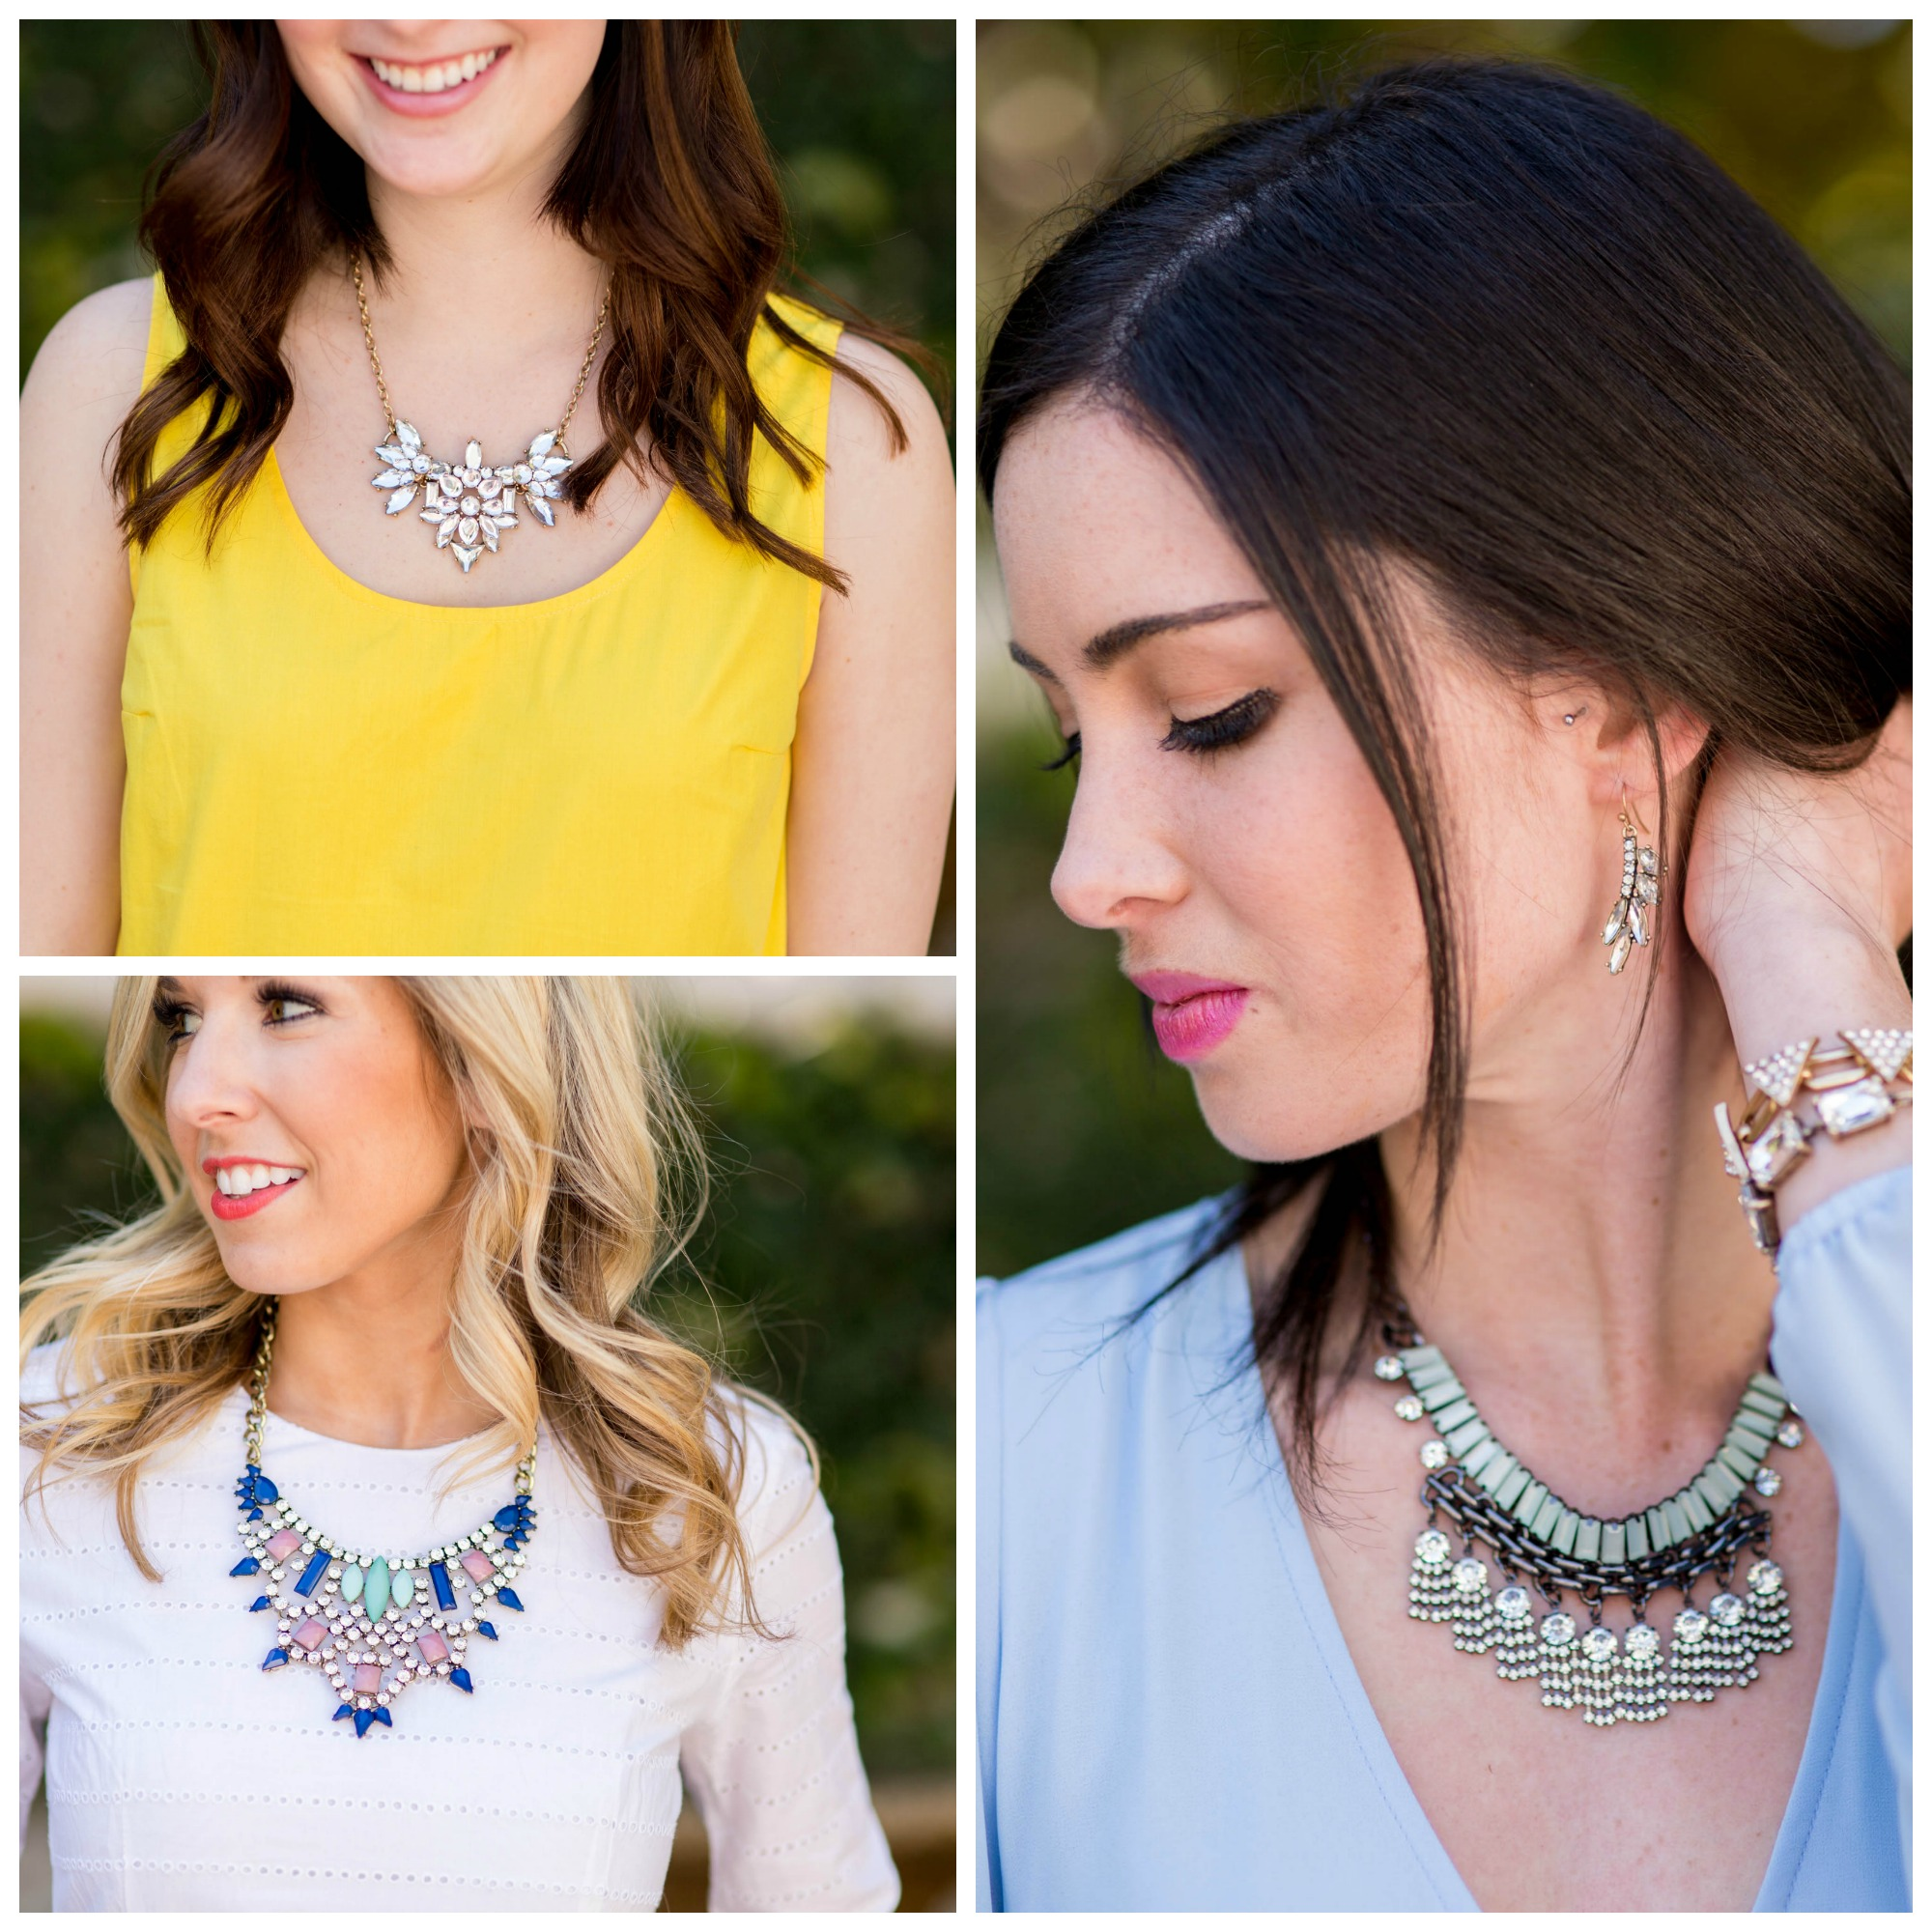 From left to right, top to bottom: The Livvy Necklace, The Paisley Paige Necklace, The Serenity Earrings, The Sahara Bracelet, The Riley Rectangle Bracelet, The Skylar Necklace